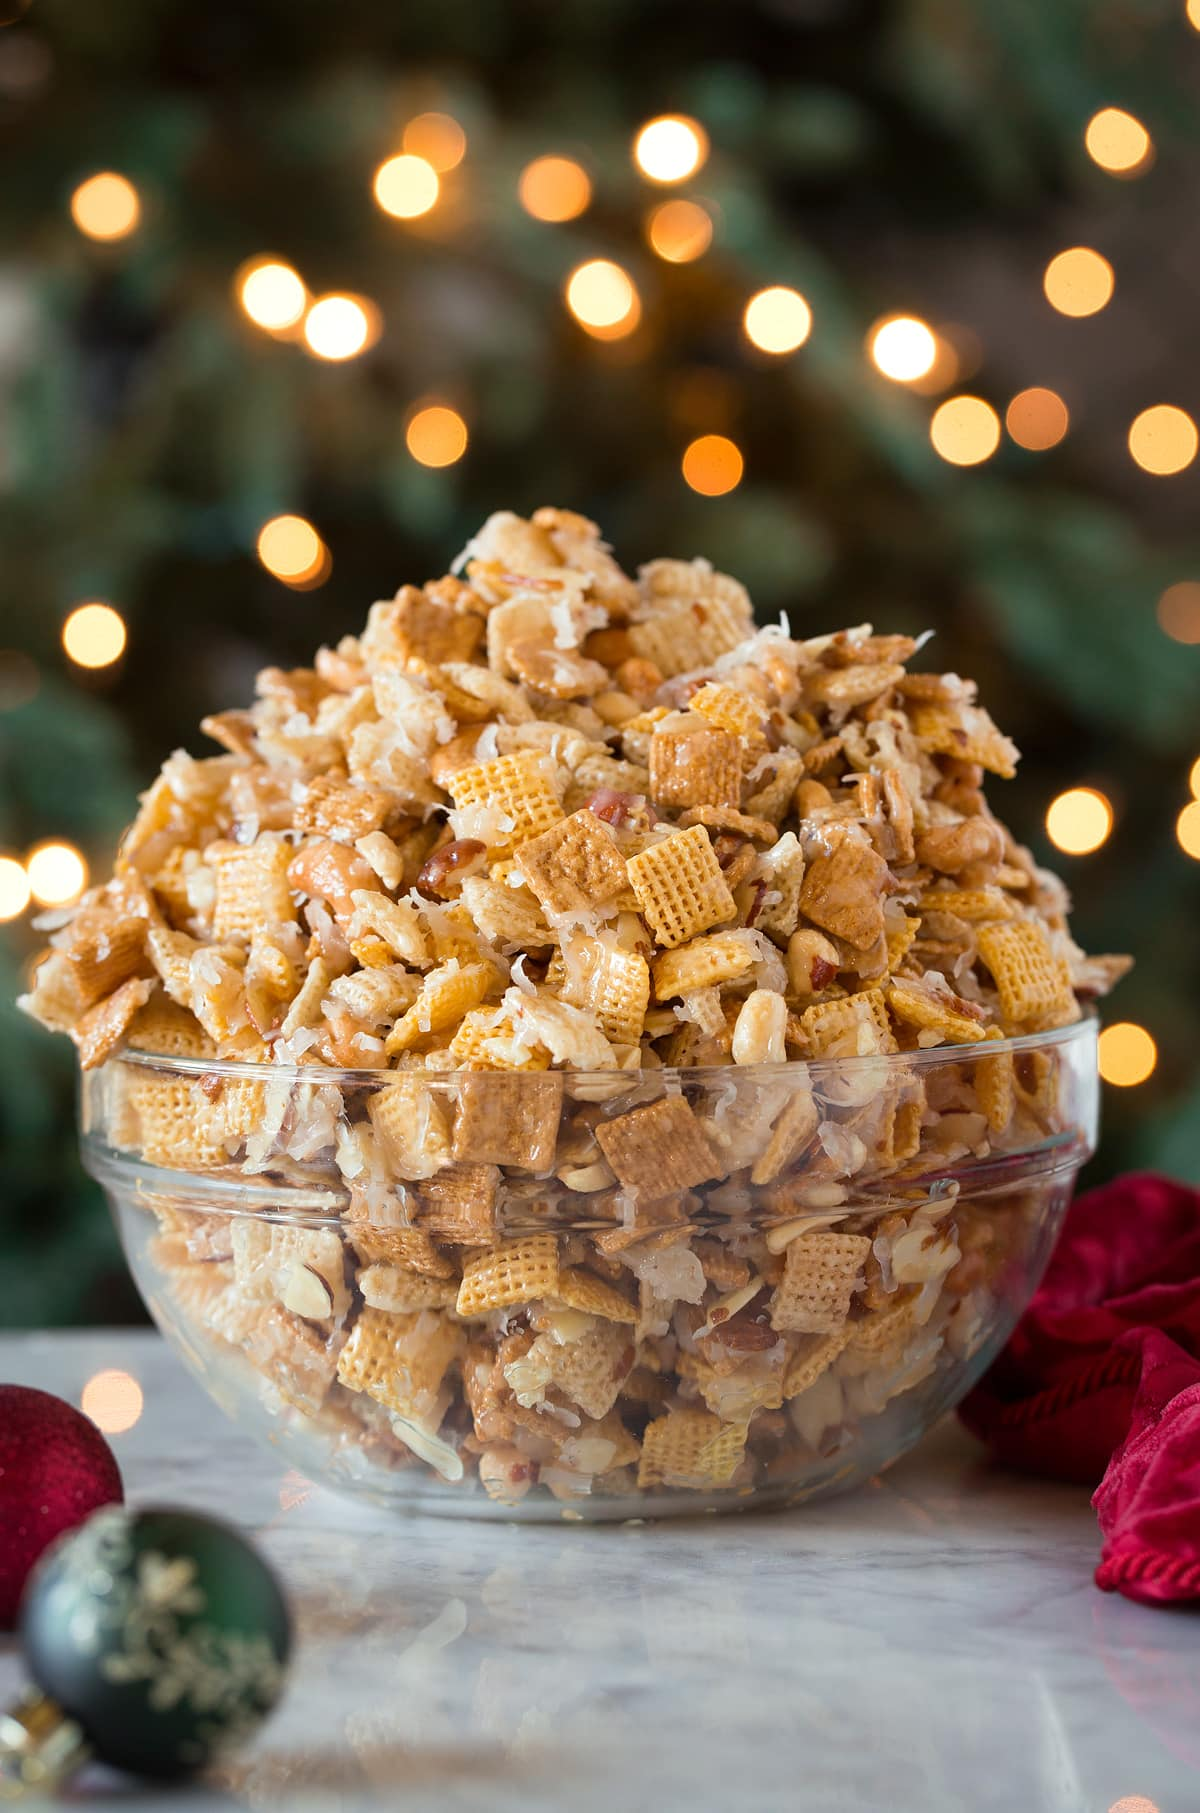 Sweet Holiday Chex Mix - Cooking Classy